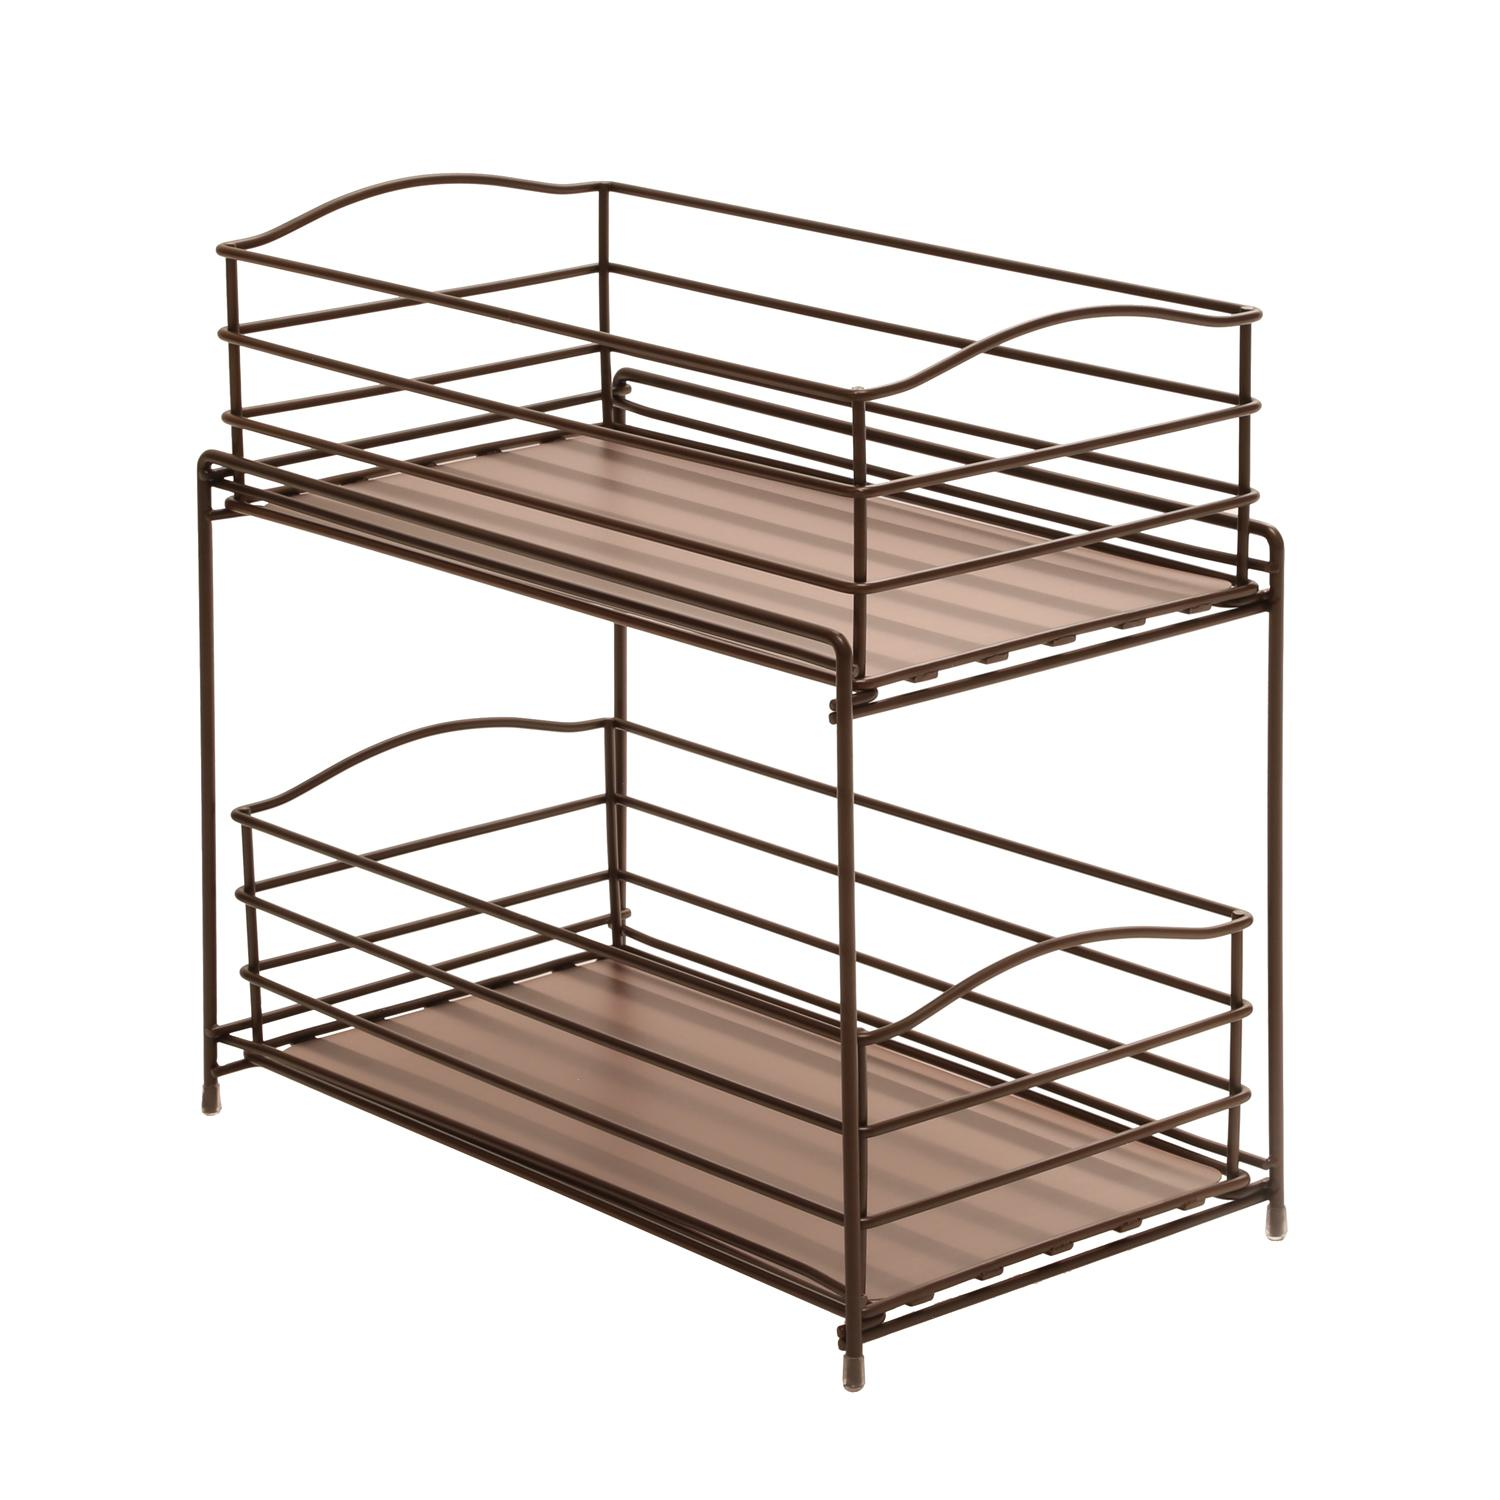 Uncategorized Sliding Basket Organizer amazon com seville classics 2 tier sliding basket kitchen from the manufacturer